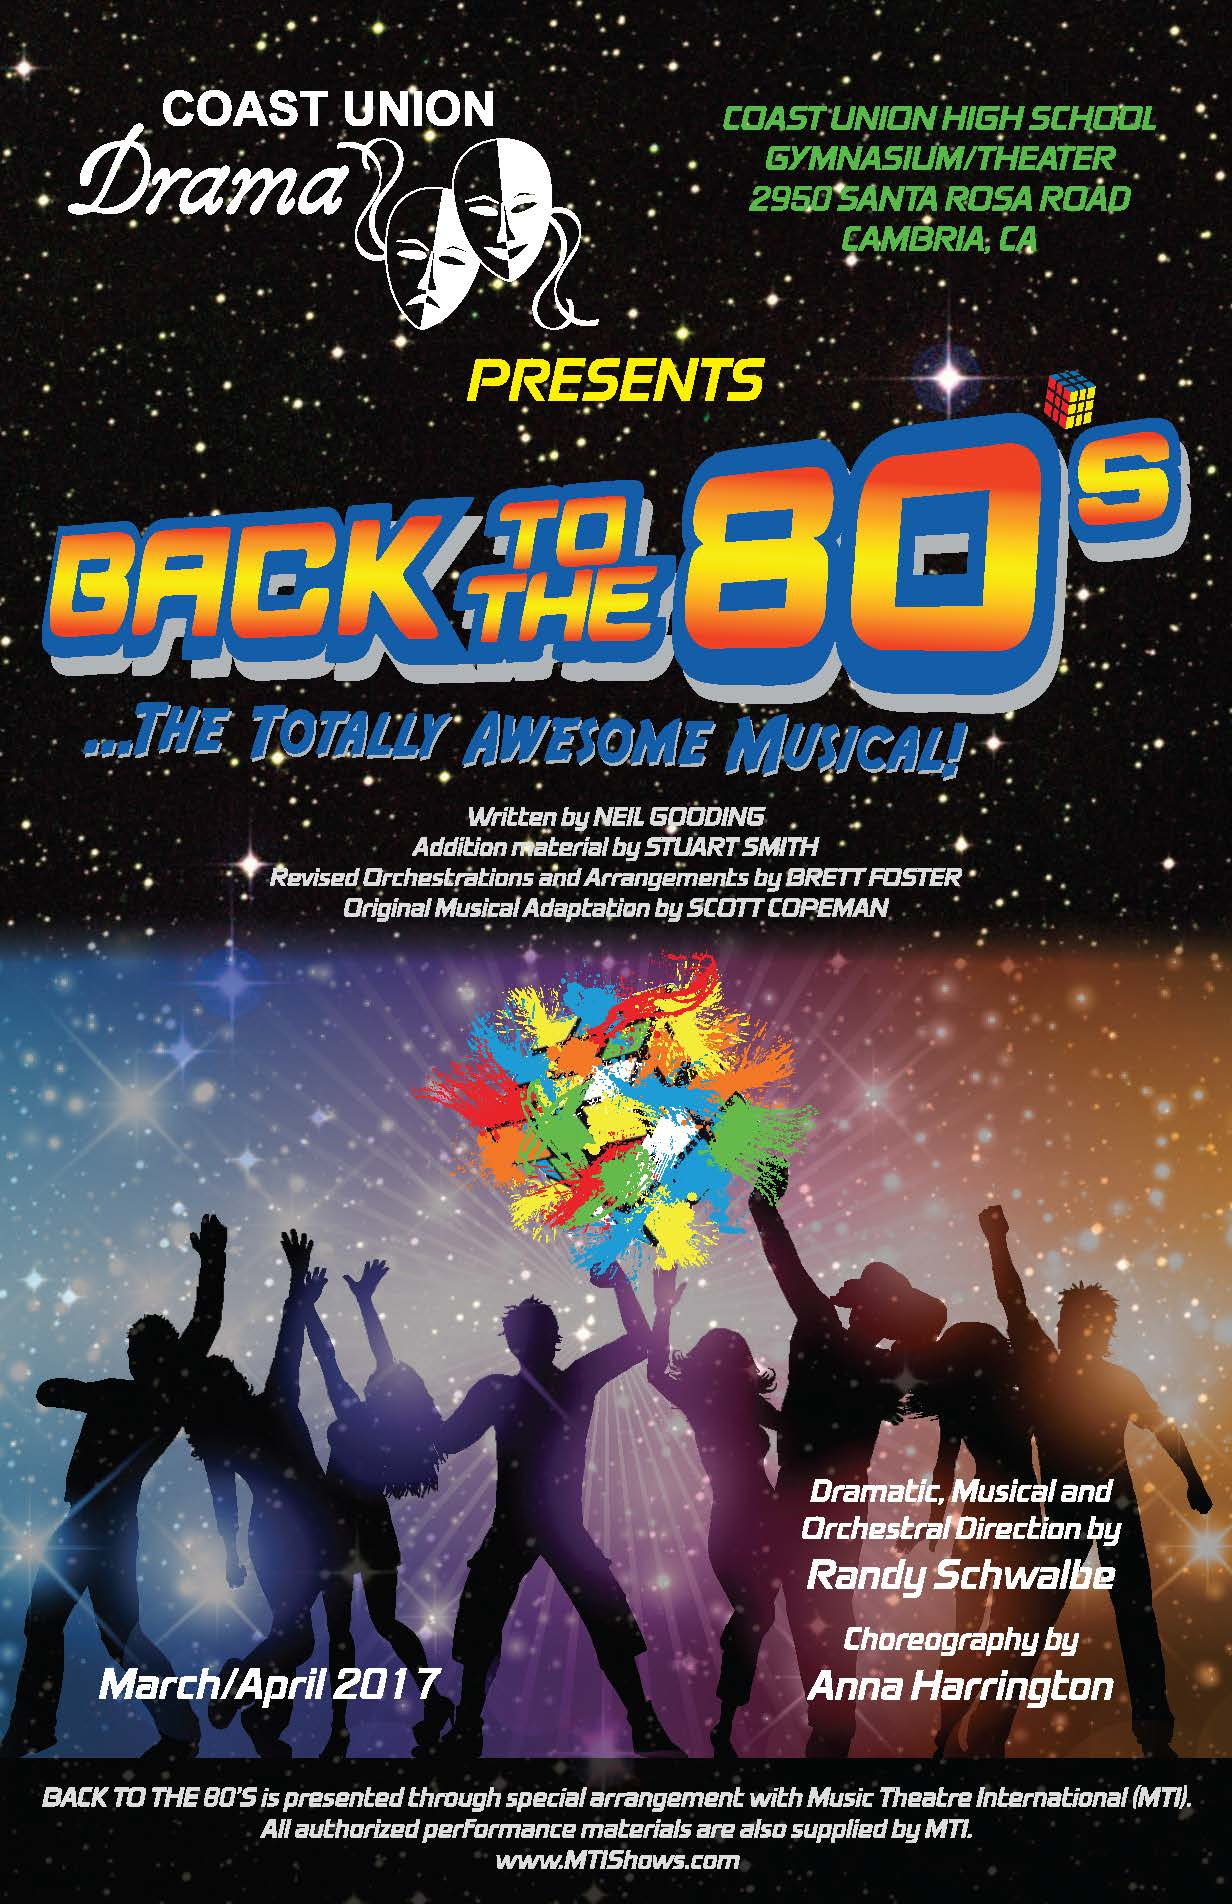 cuhs-drama-back-to-the-80s-program-vweb_reduced_page_1